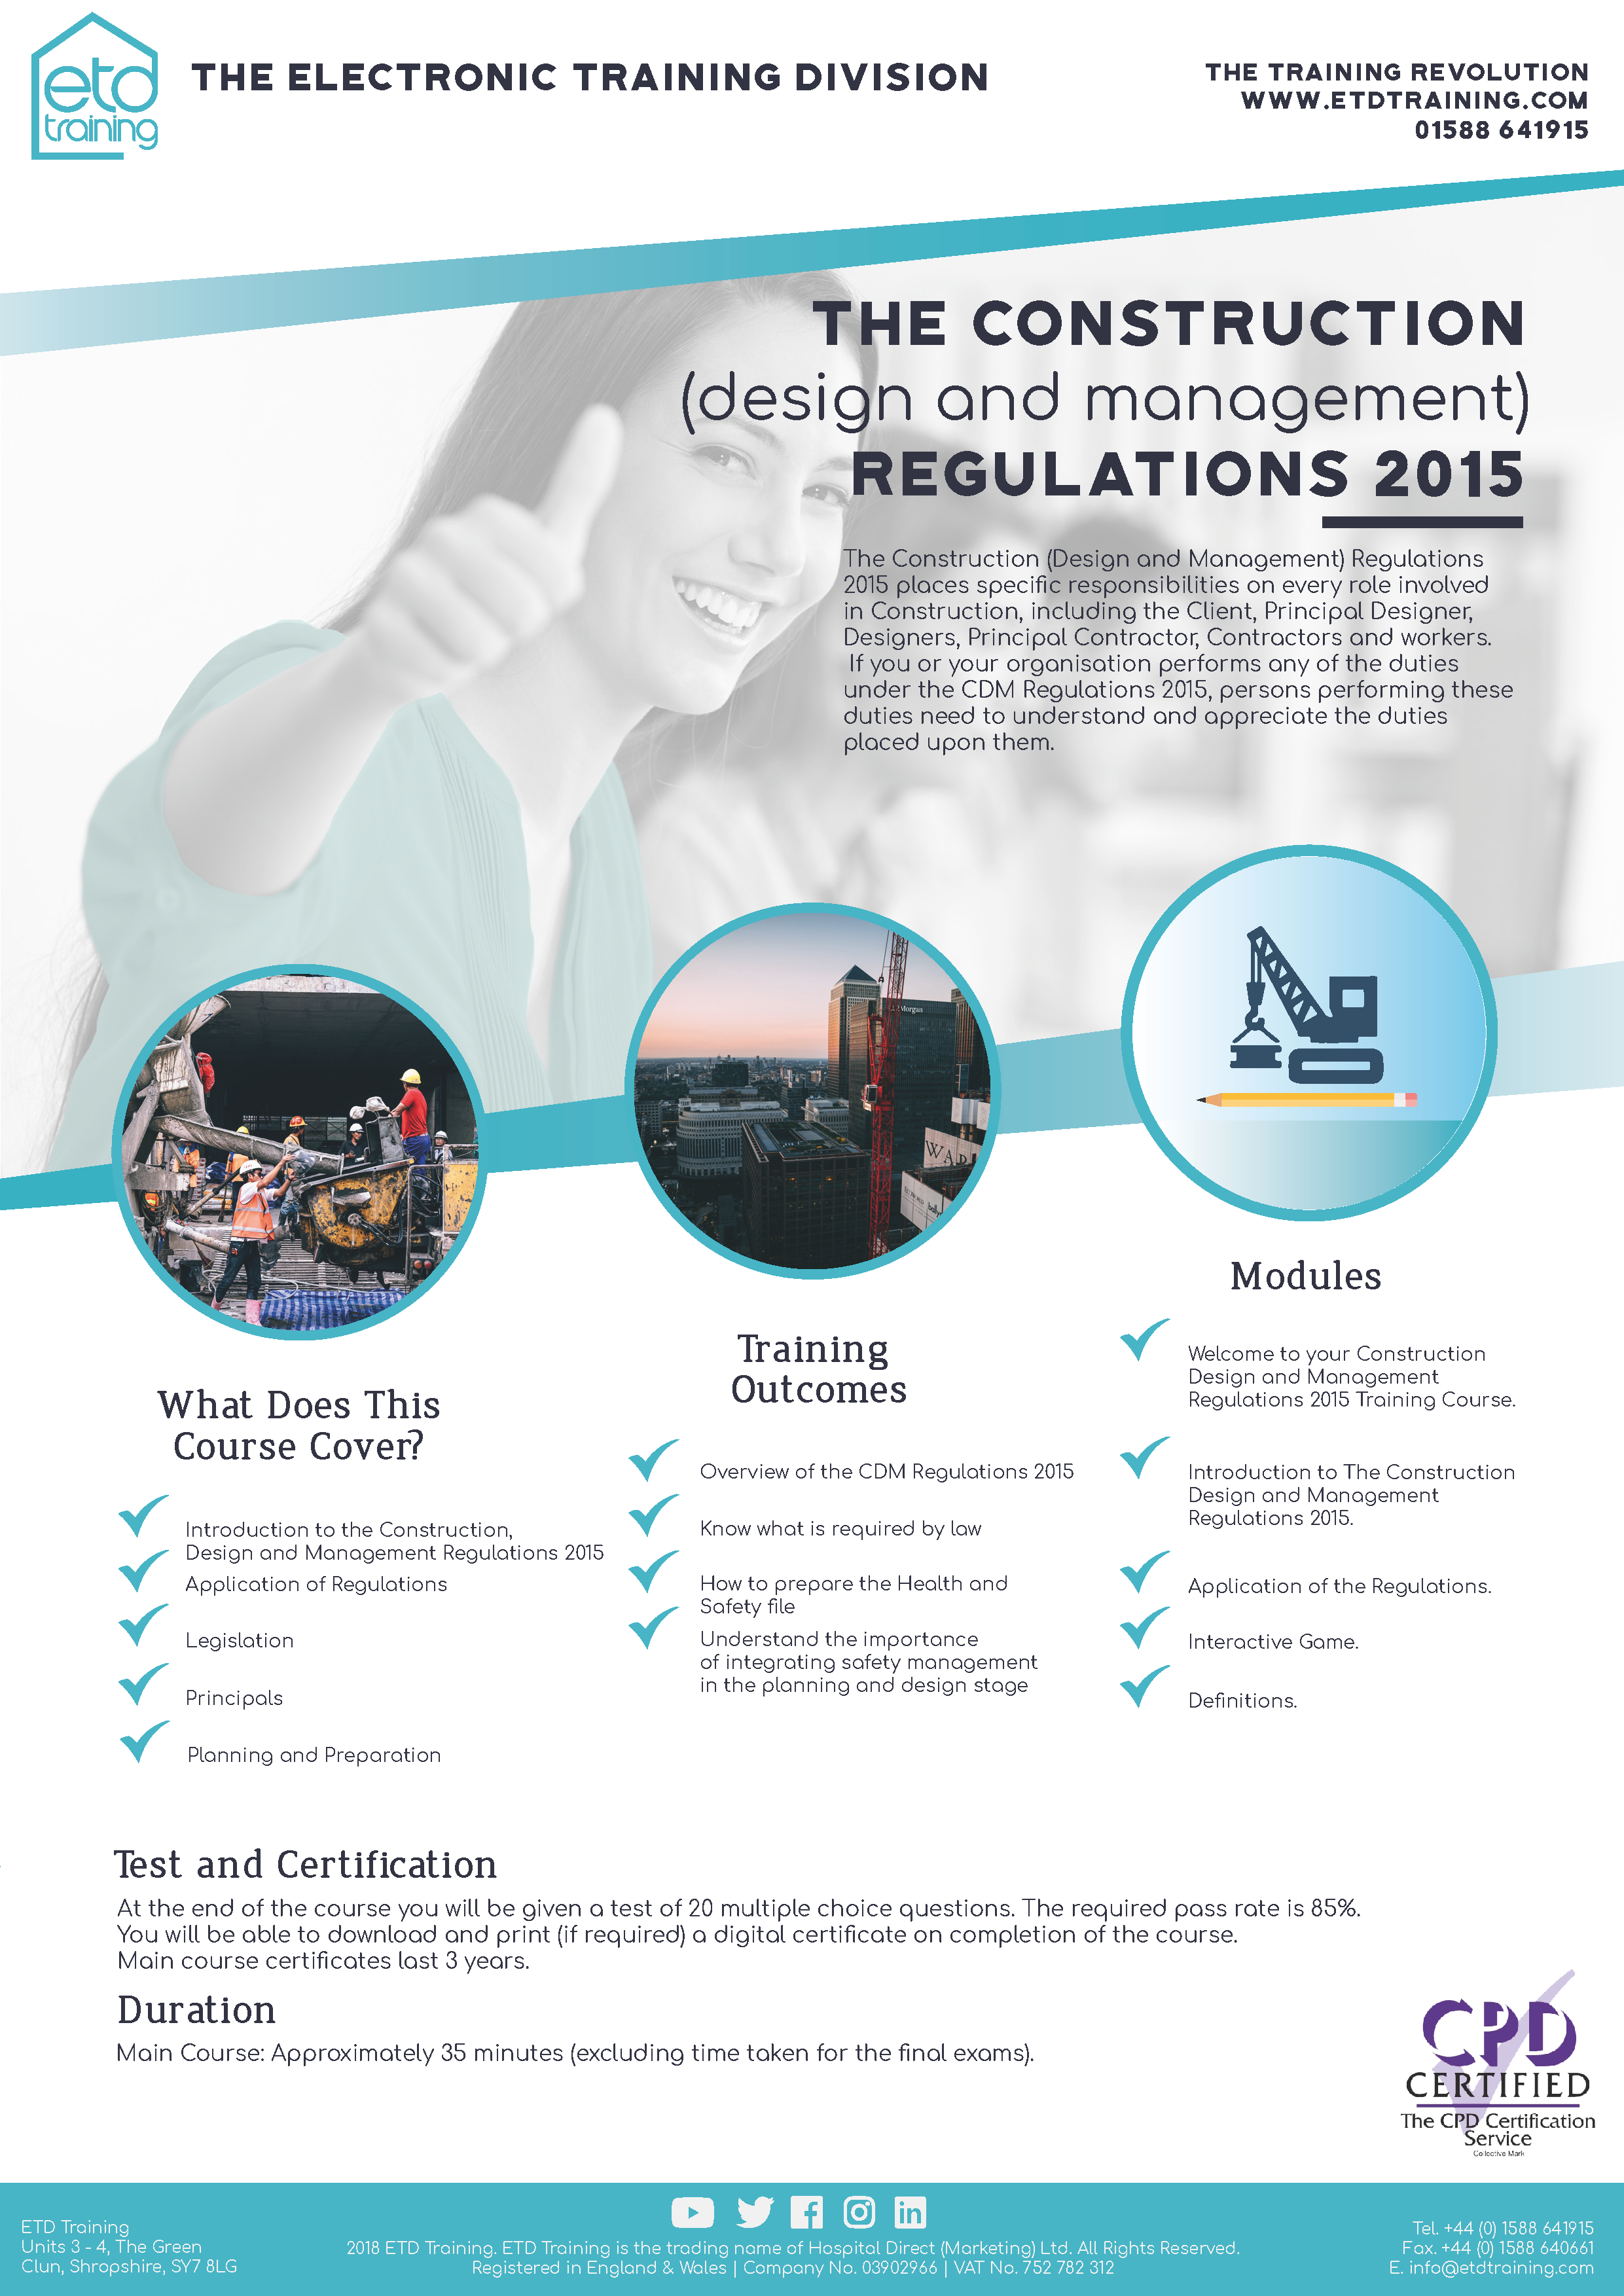 constructiondesignandmanagementregulations2015.png